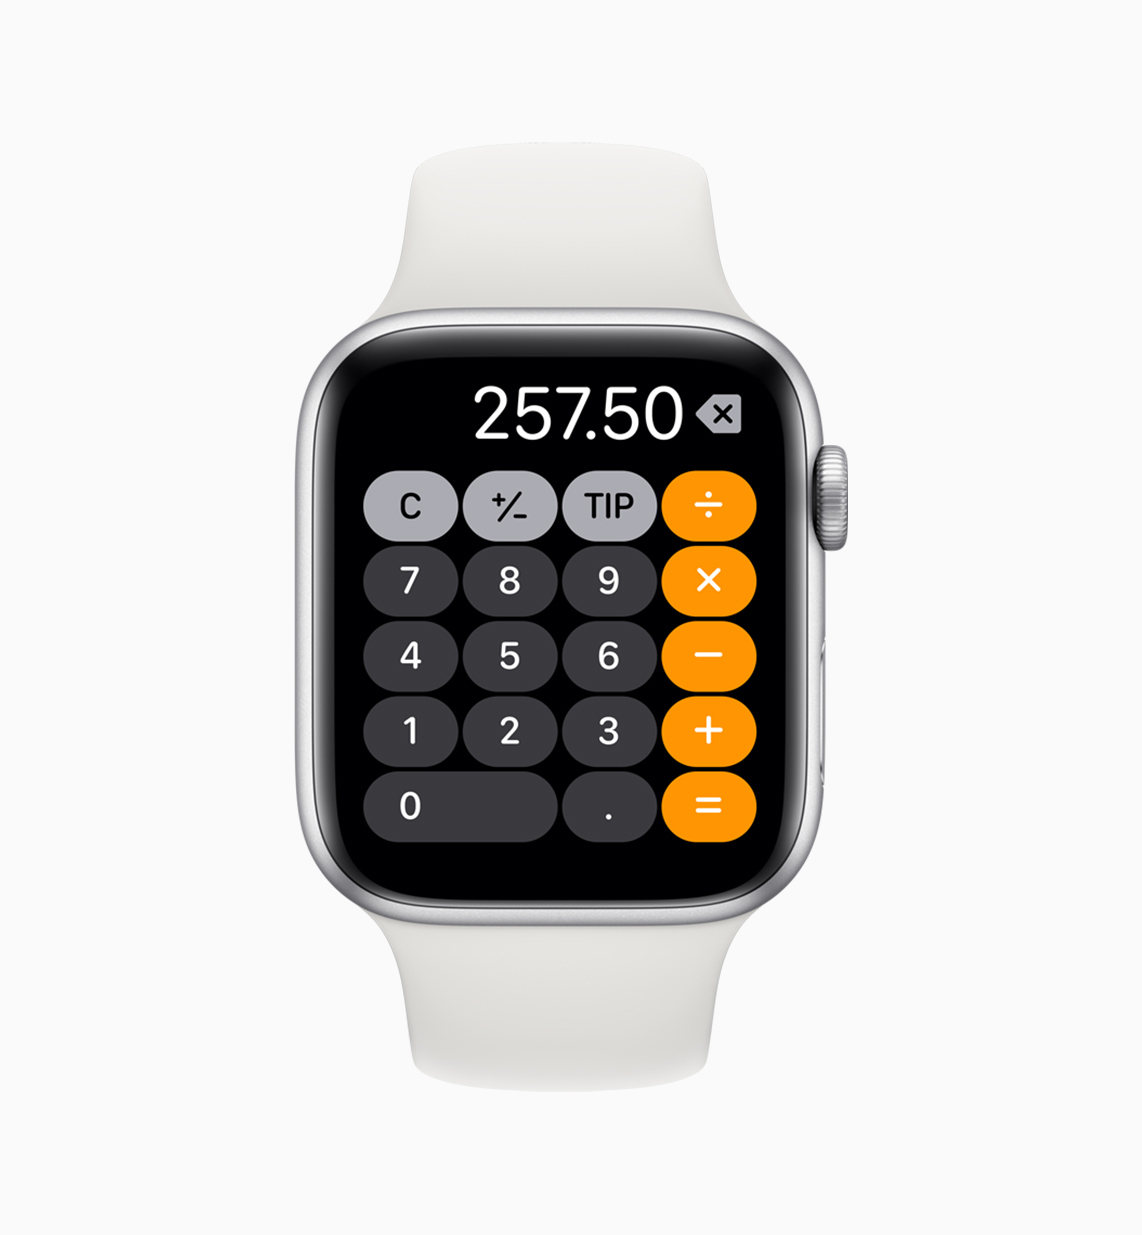 watchOS 6 introduces popular apps like Calculator